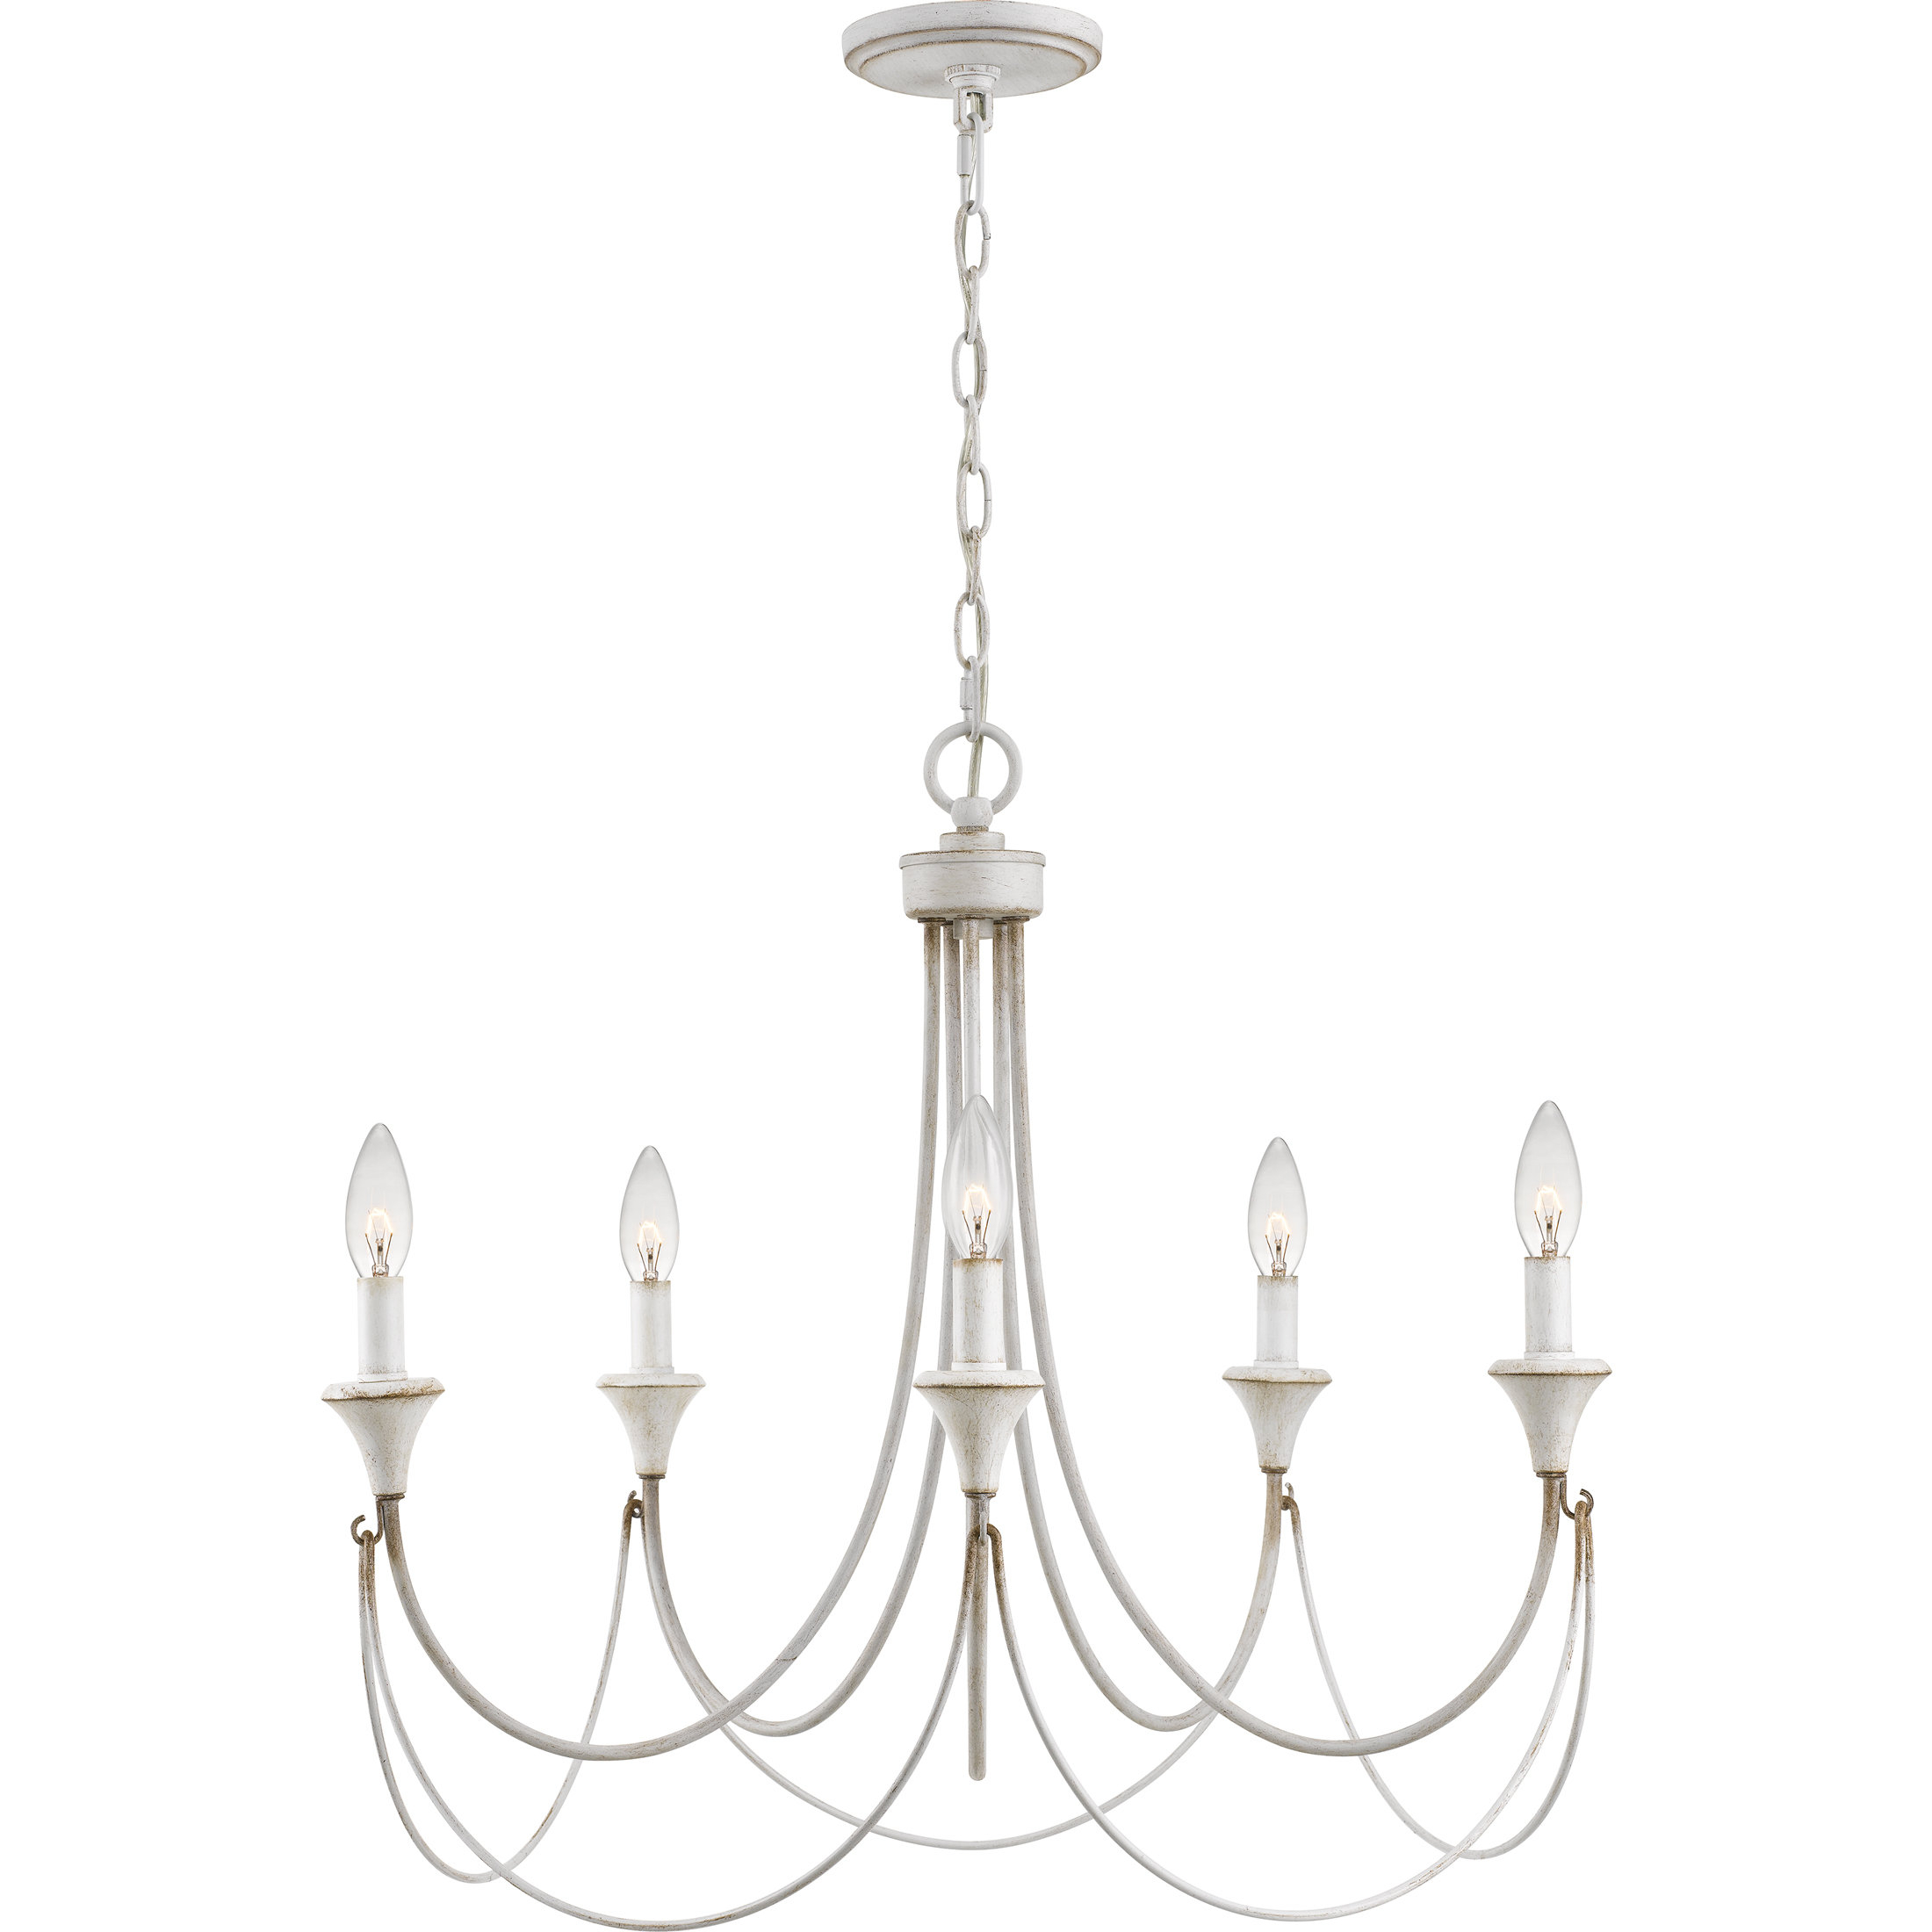 Corneau 5 Light Chandeliers For Most Current Breakwater Bay Walczak 5 Light Chandelier (View 20 of 25)